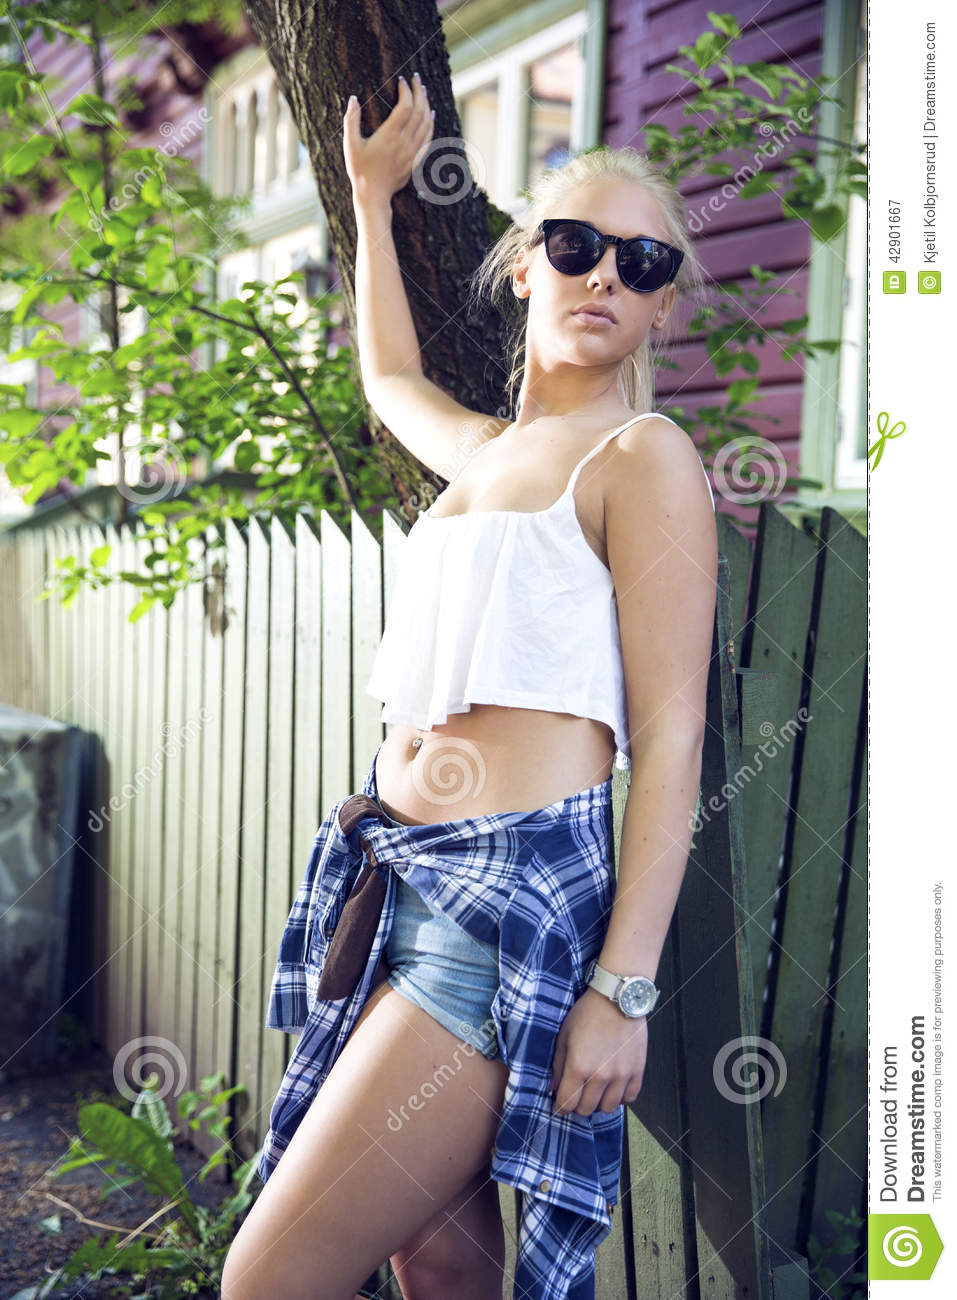 Cute blonde girl posing in front of wooden house